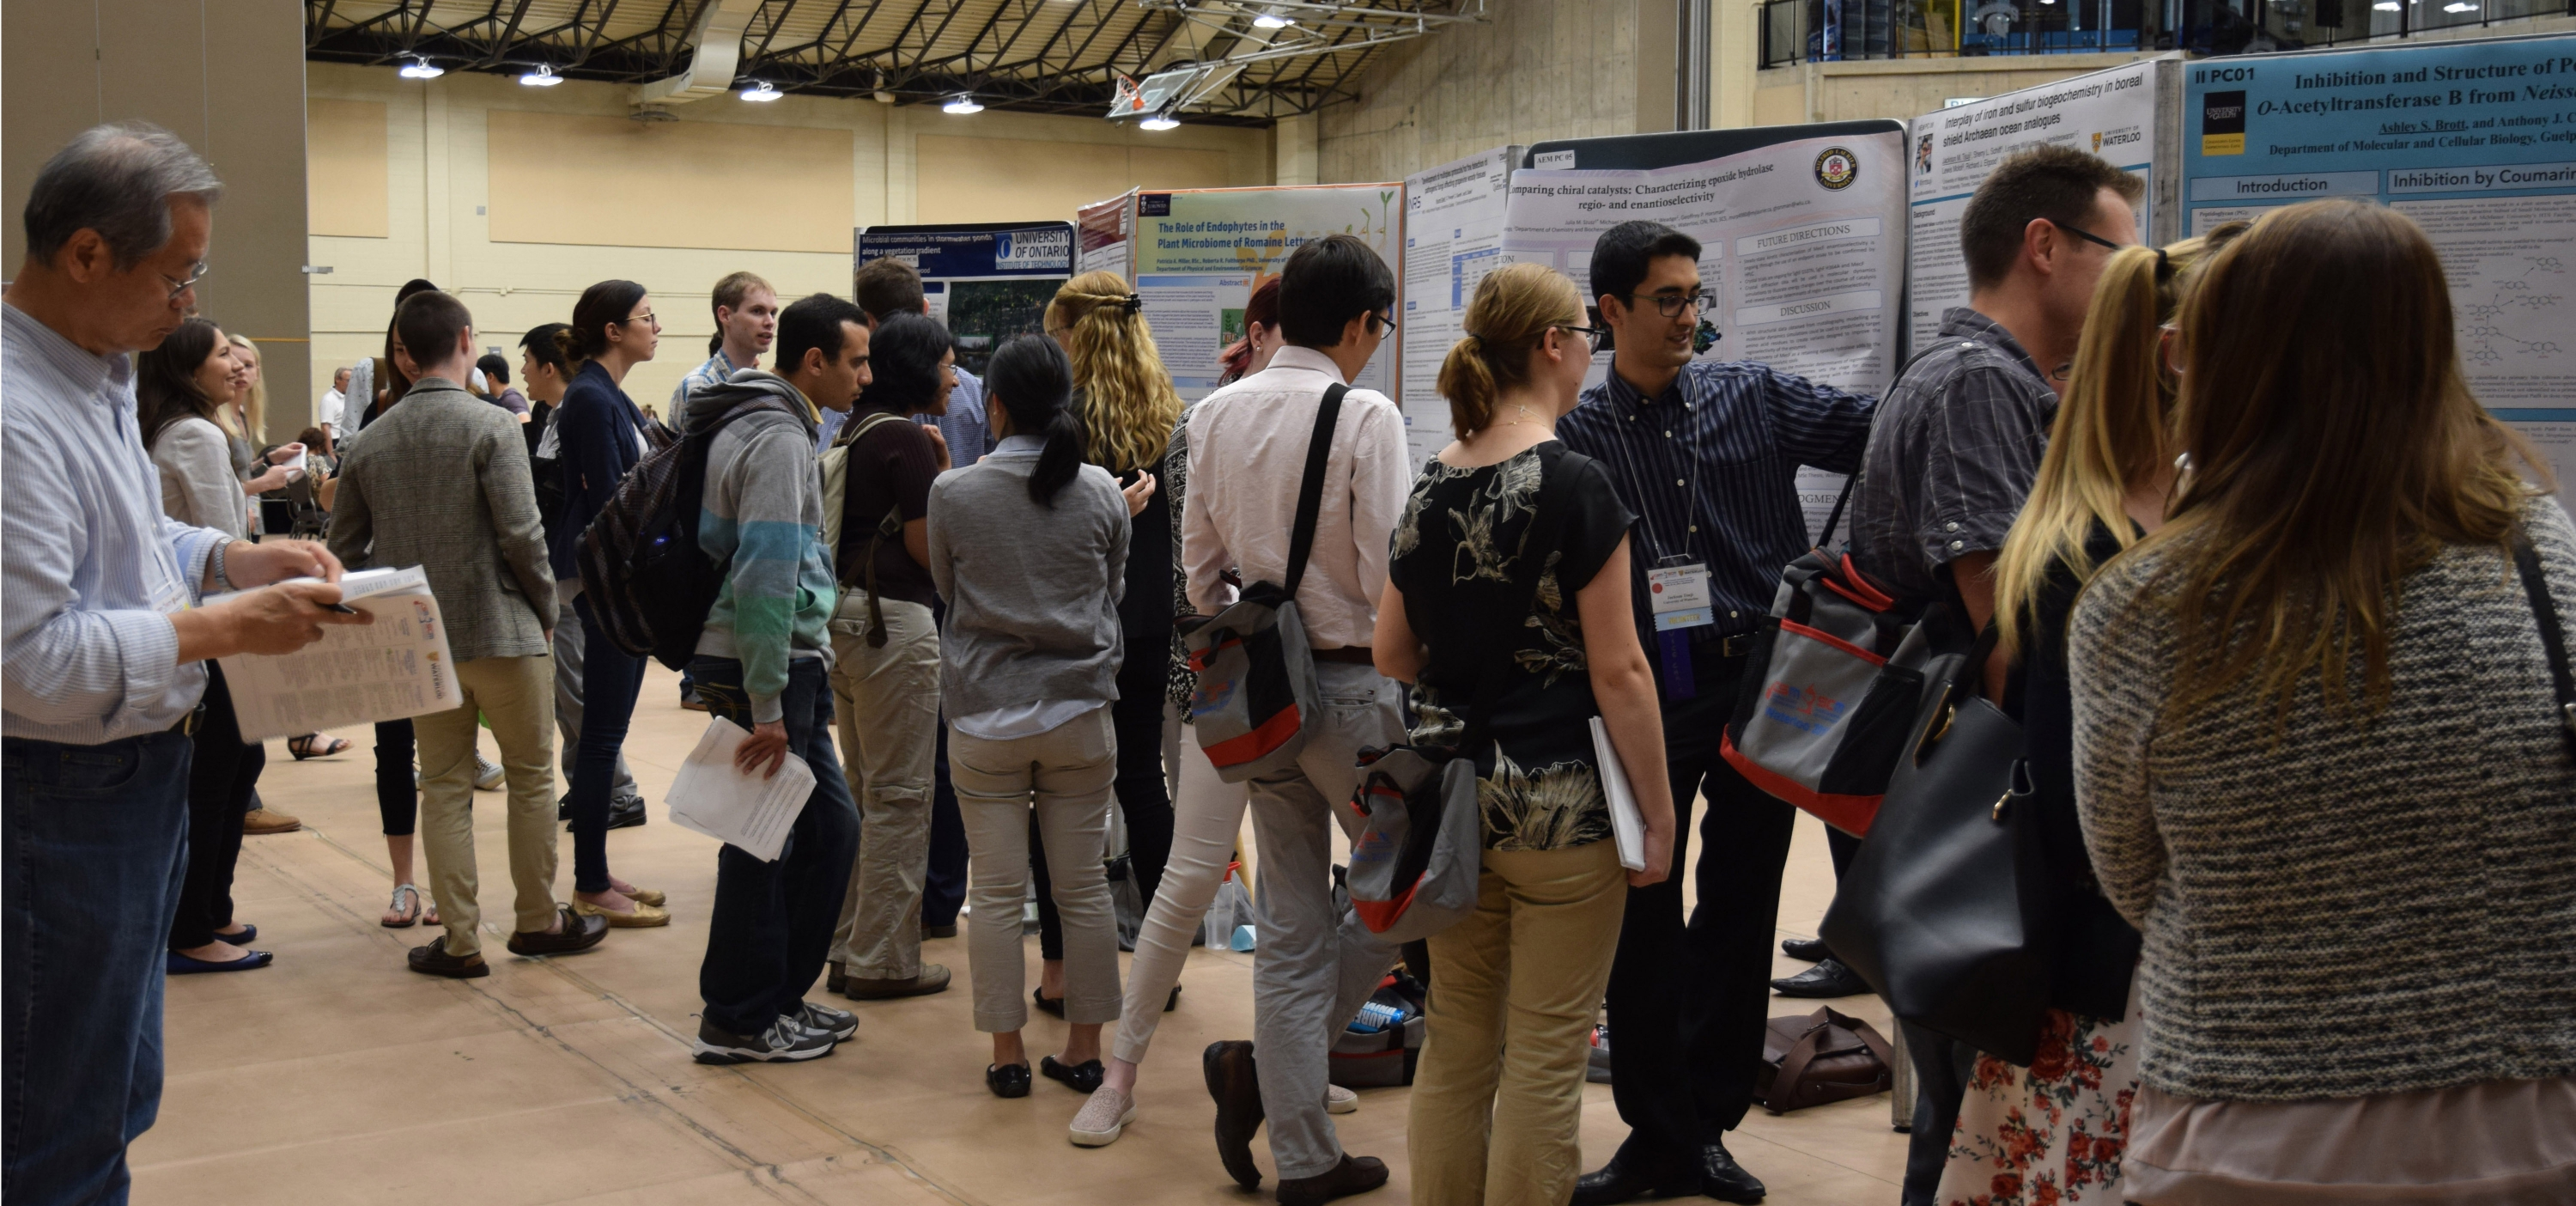 The poster session at the 2017 Canadian Society of Microbiologists